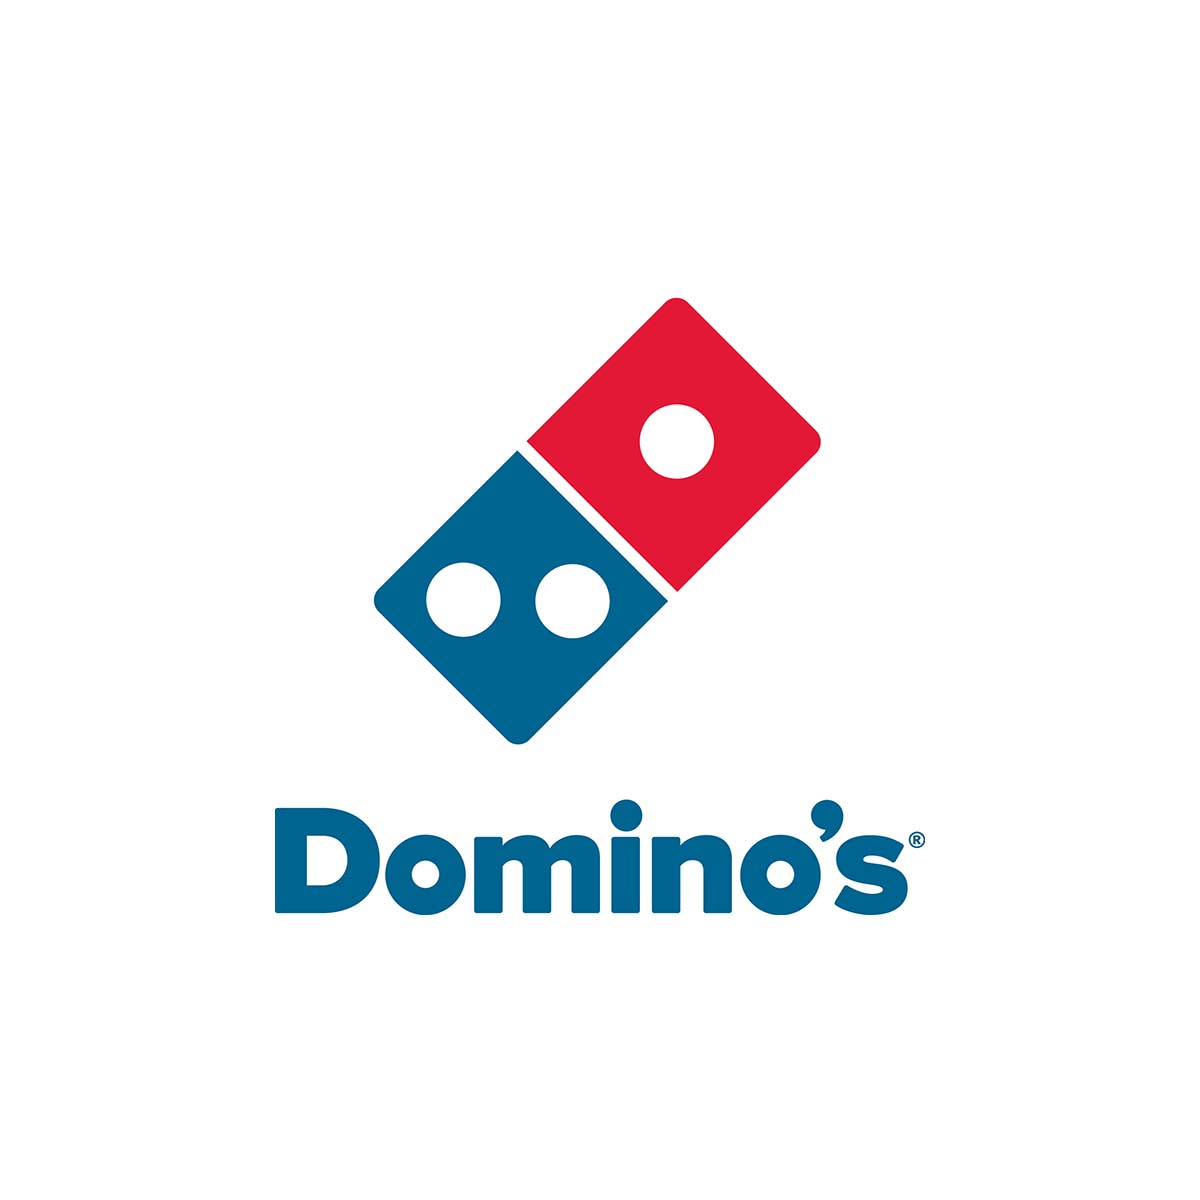 https://cache.dominos.com/olo/5_17_1/assets/build/images/promo/dominos_social_logo.jpg